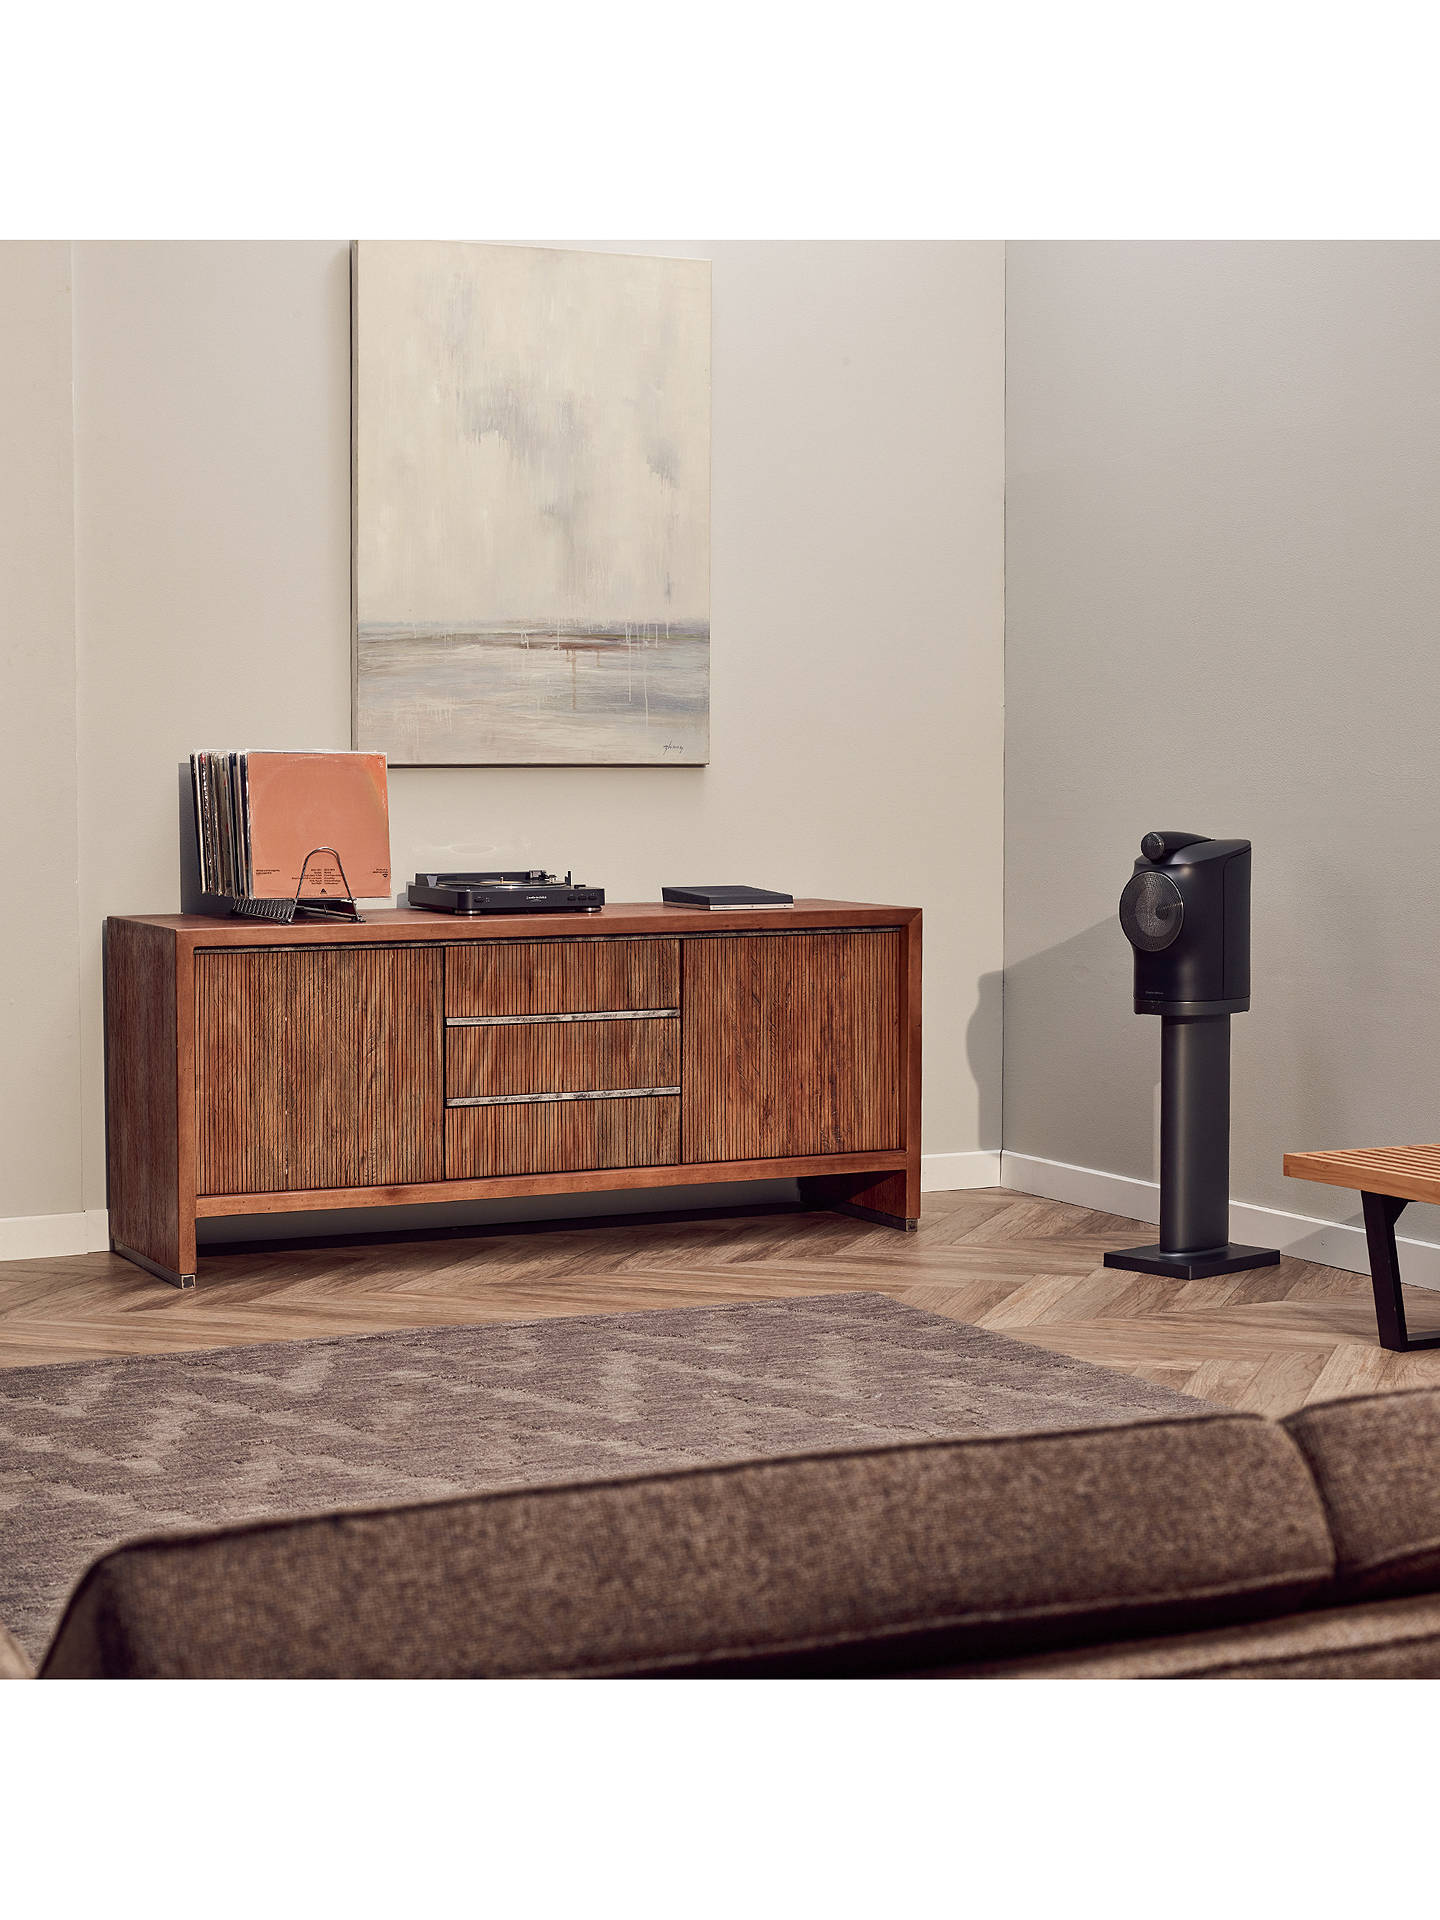 Buy Bowers & Wilkins Formation Duo Bluetooth Wi-Fi Stereo Speakers, Black Online at johnlewis.com